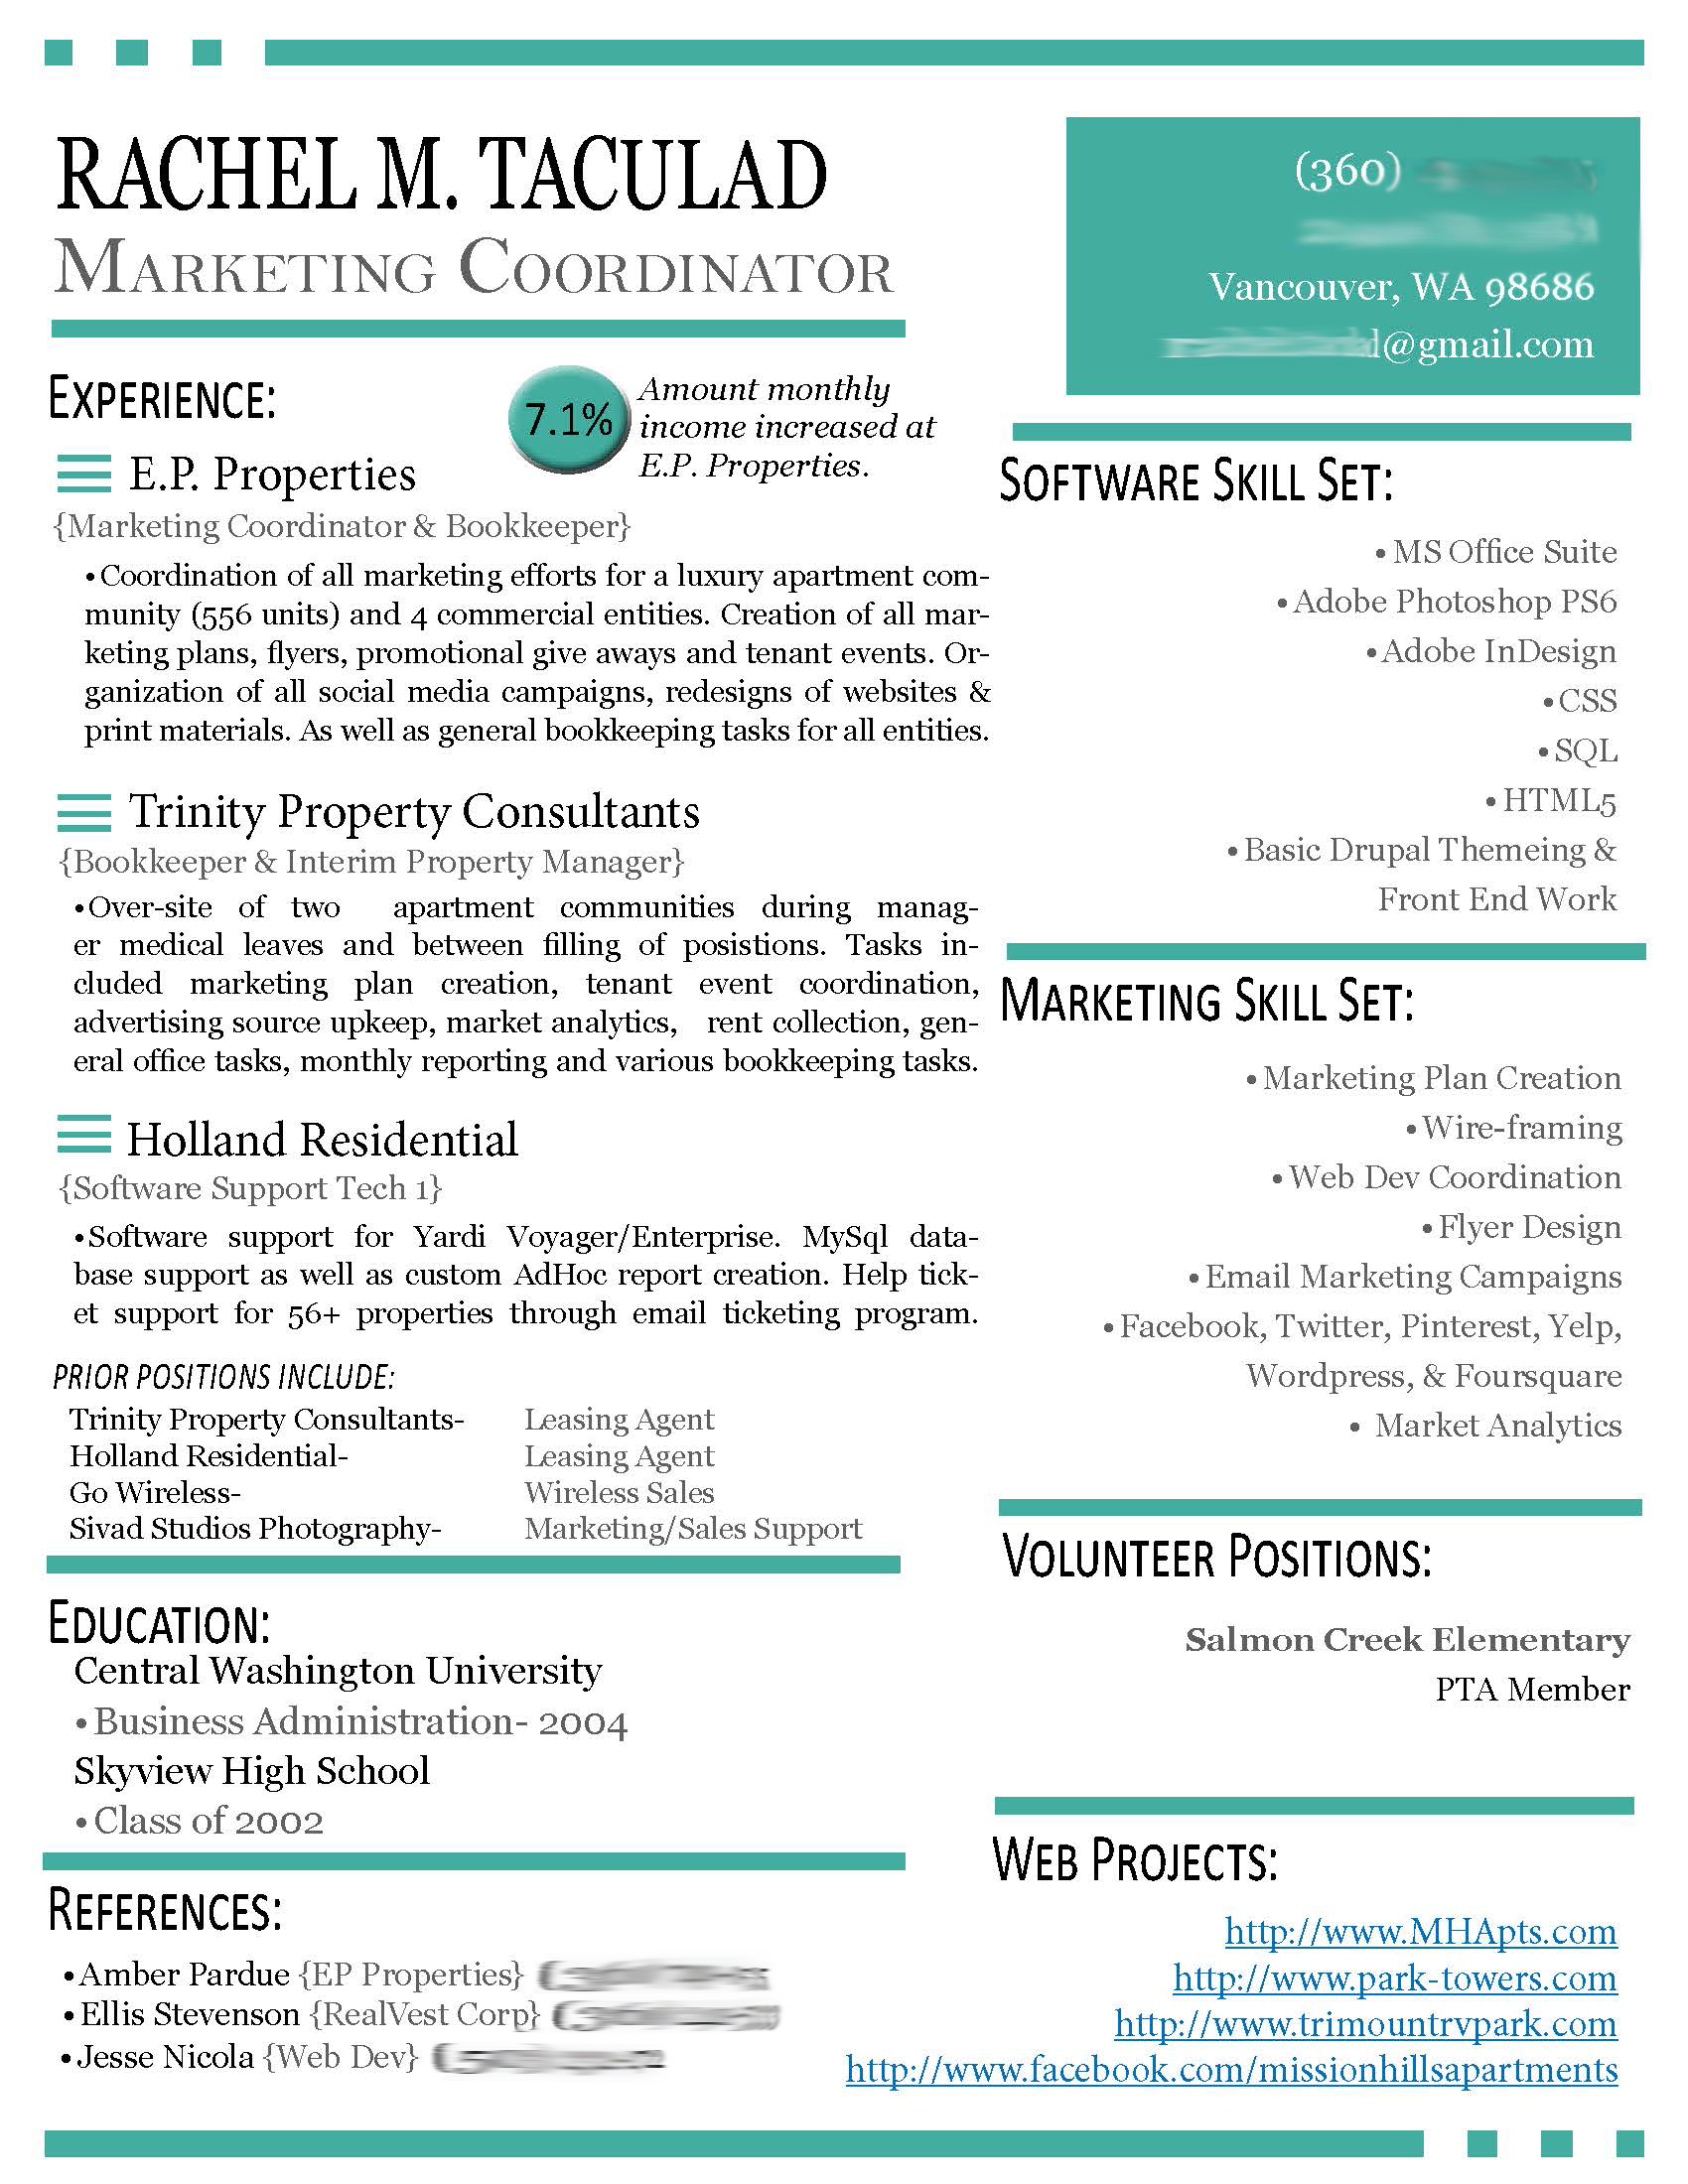 Resume For Graduate School Application Social Work High School Graduate Resume Example Work Experience Modern R233;sum233; Update Left Brain Right Brain